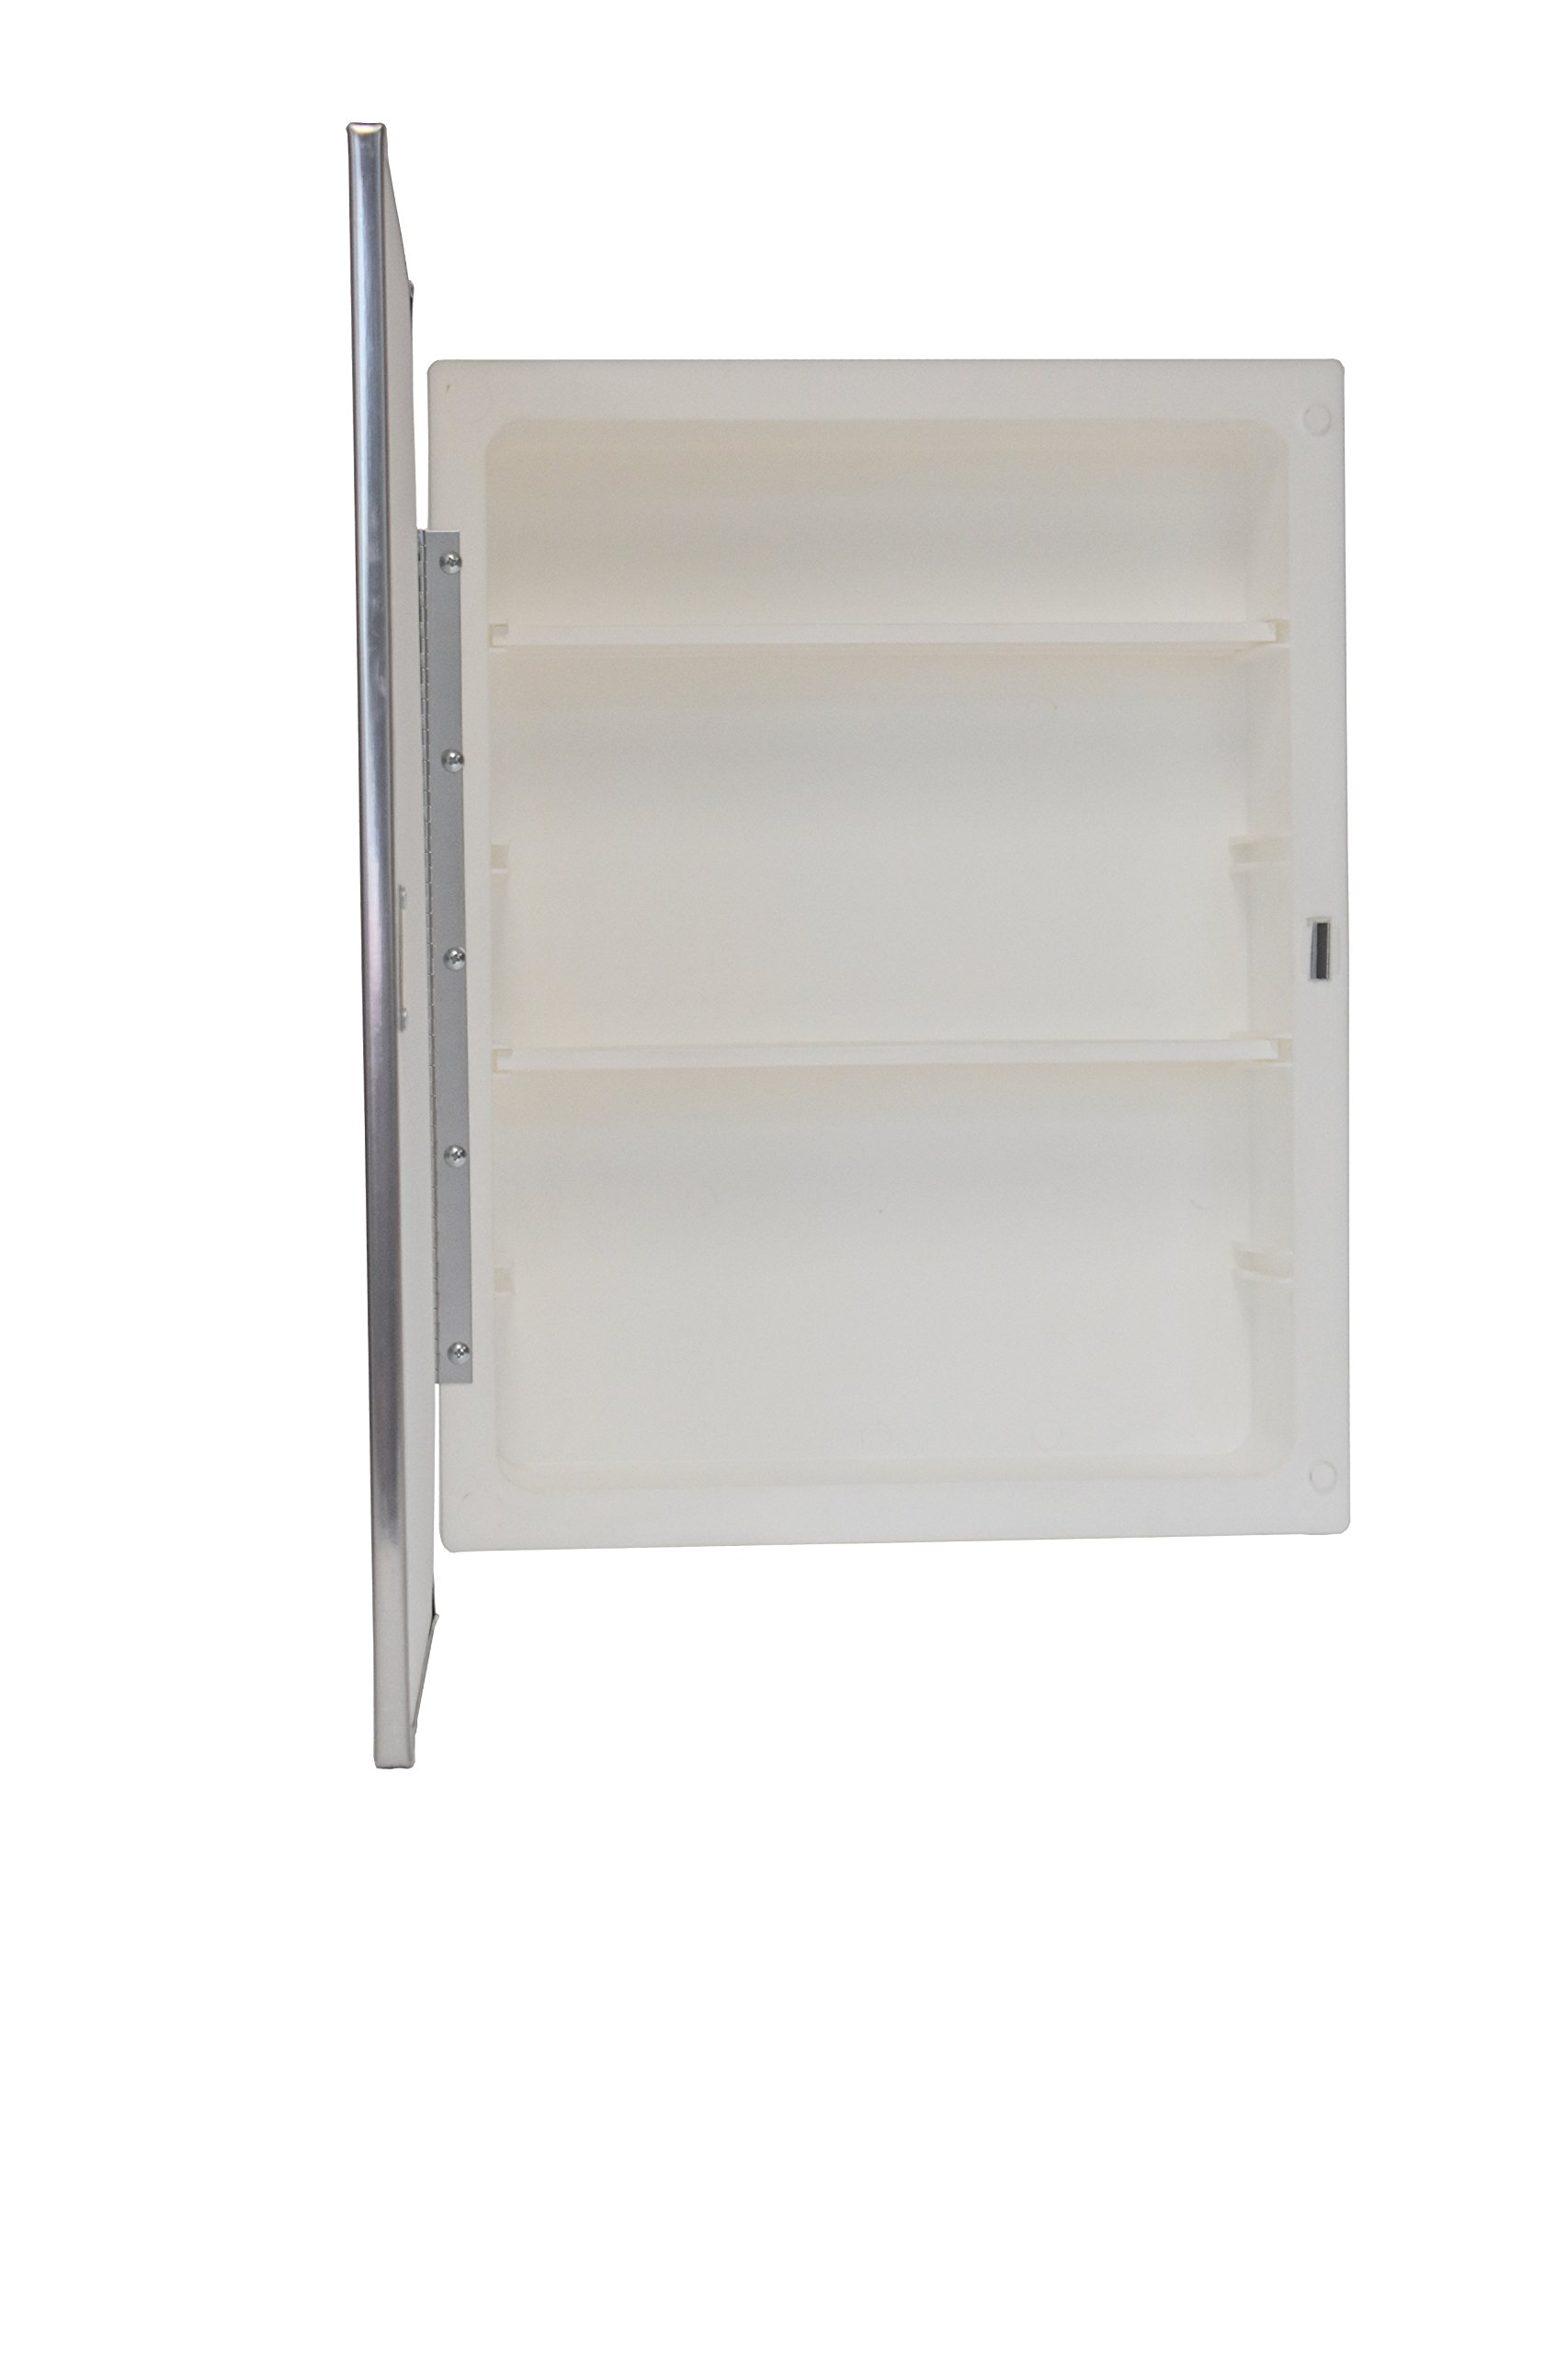 Mirrors and More Recessed Framed Mirror Bright Steel Medicine Cabinet | Adjustable Shelves | Bathroom | Kitchen | 16'' x 22''